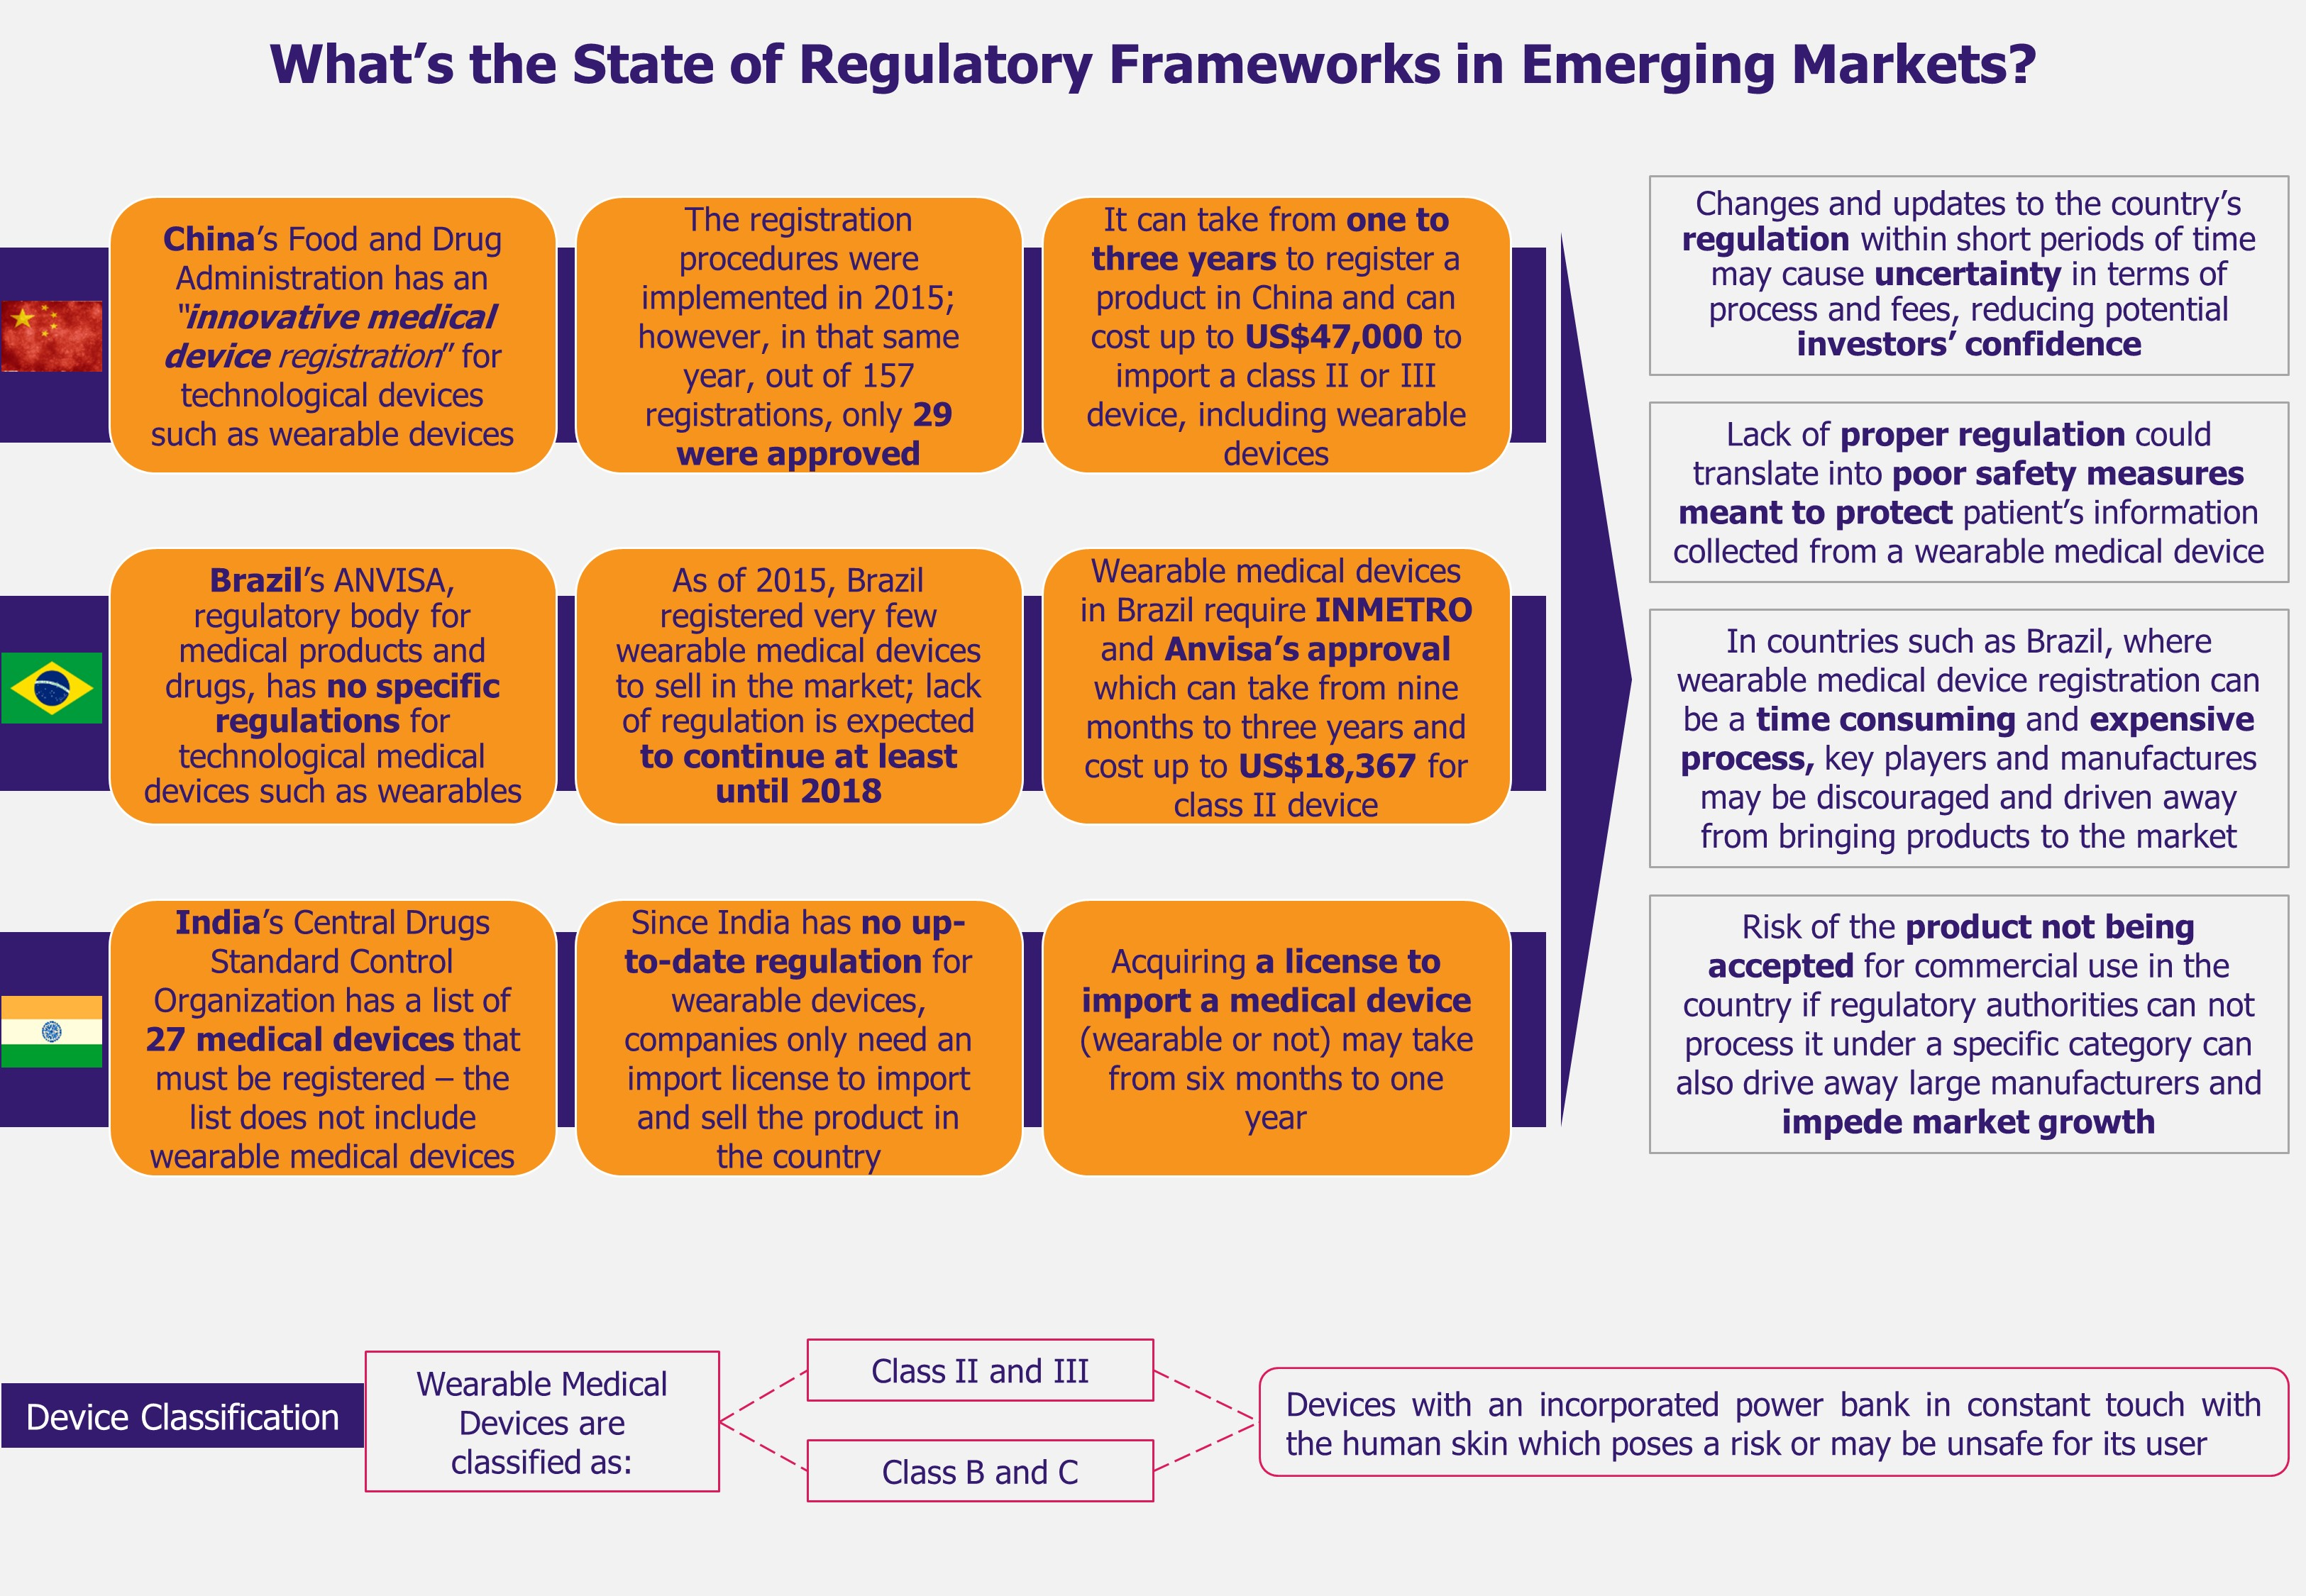 Wearable Medical Devices in India, Brazil, and China - Regulatory Frameworks